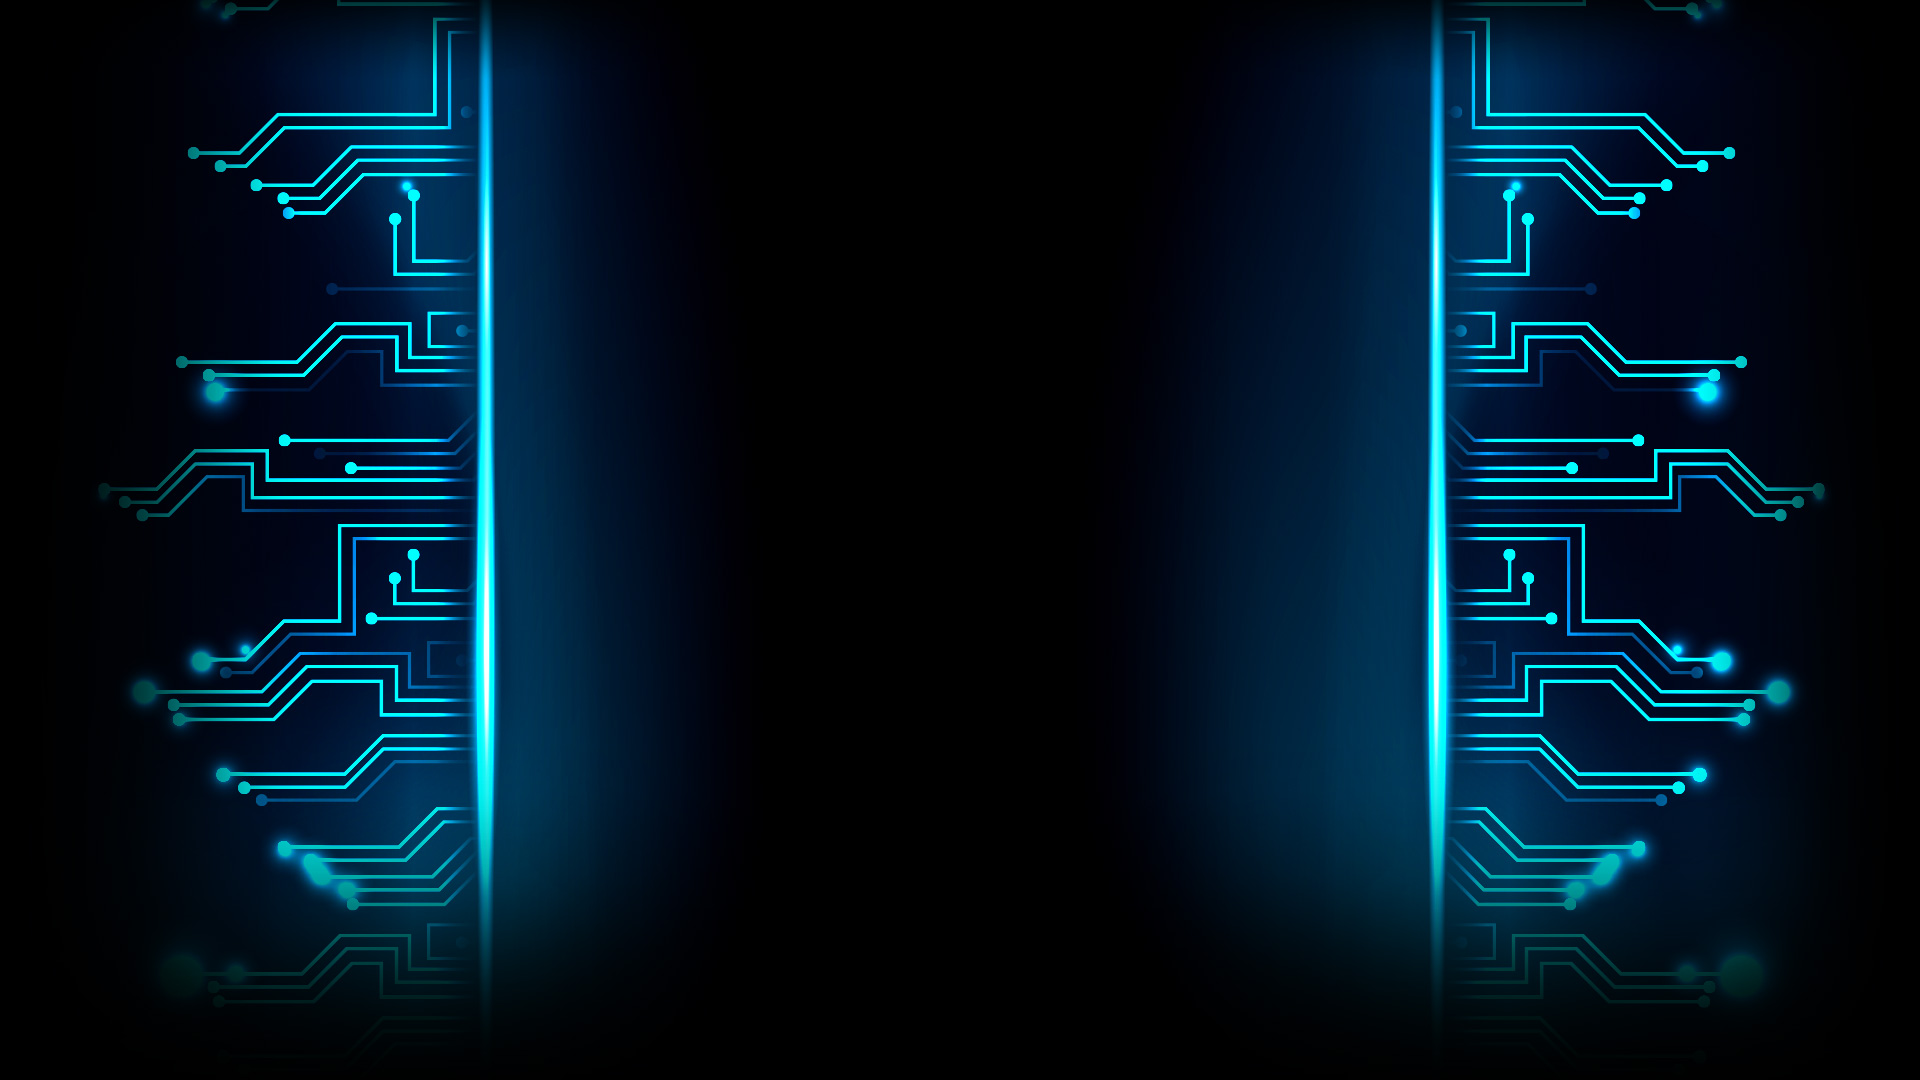 circuit backgrounds